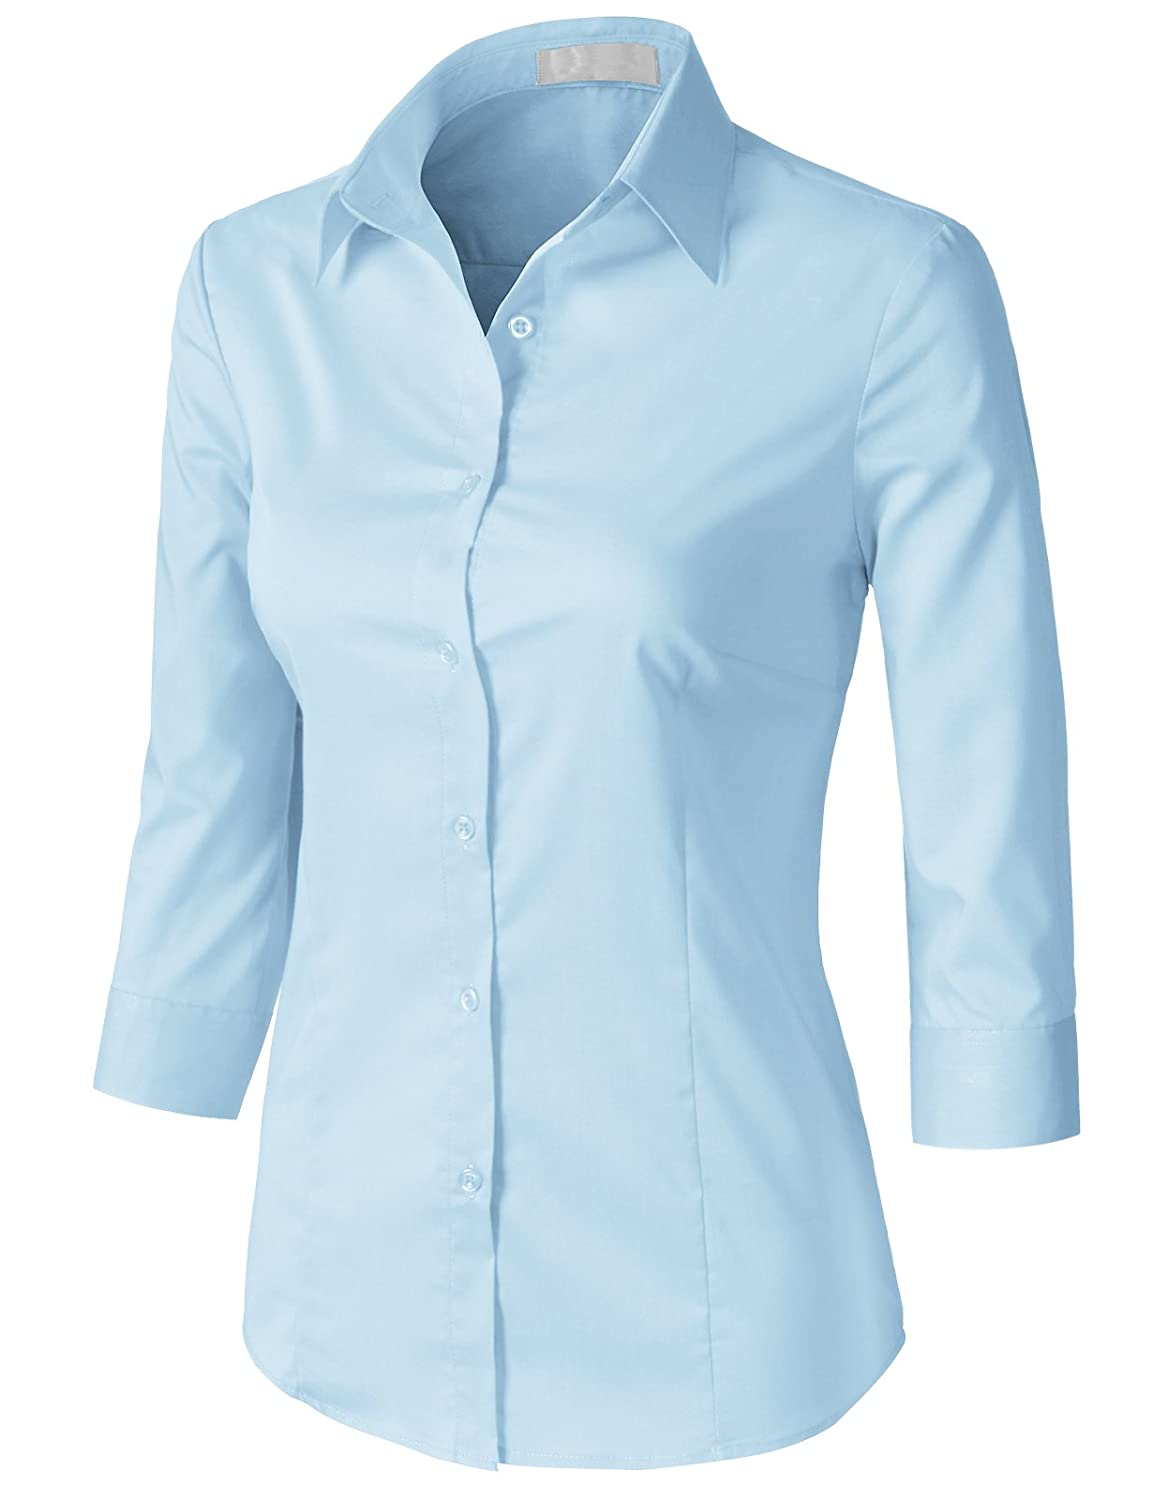 35bfb7ee45b Amazon.com  H2H Women Casual Slim Fit Button Down Dress Shirts 3 4 Sleeve  Office Blouse Top Aqua  Clothing